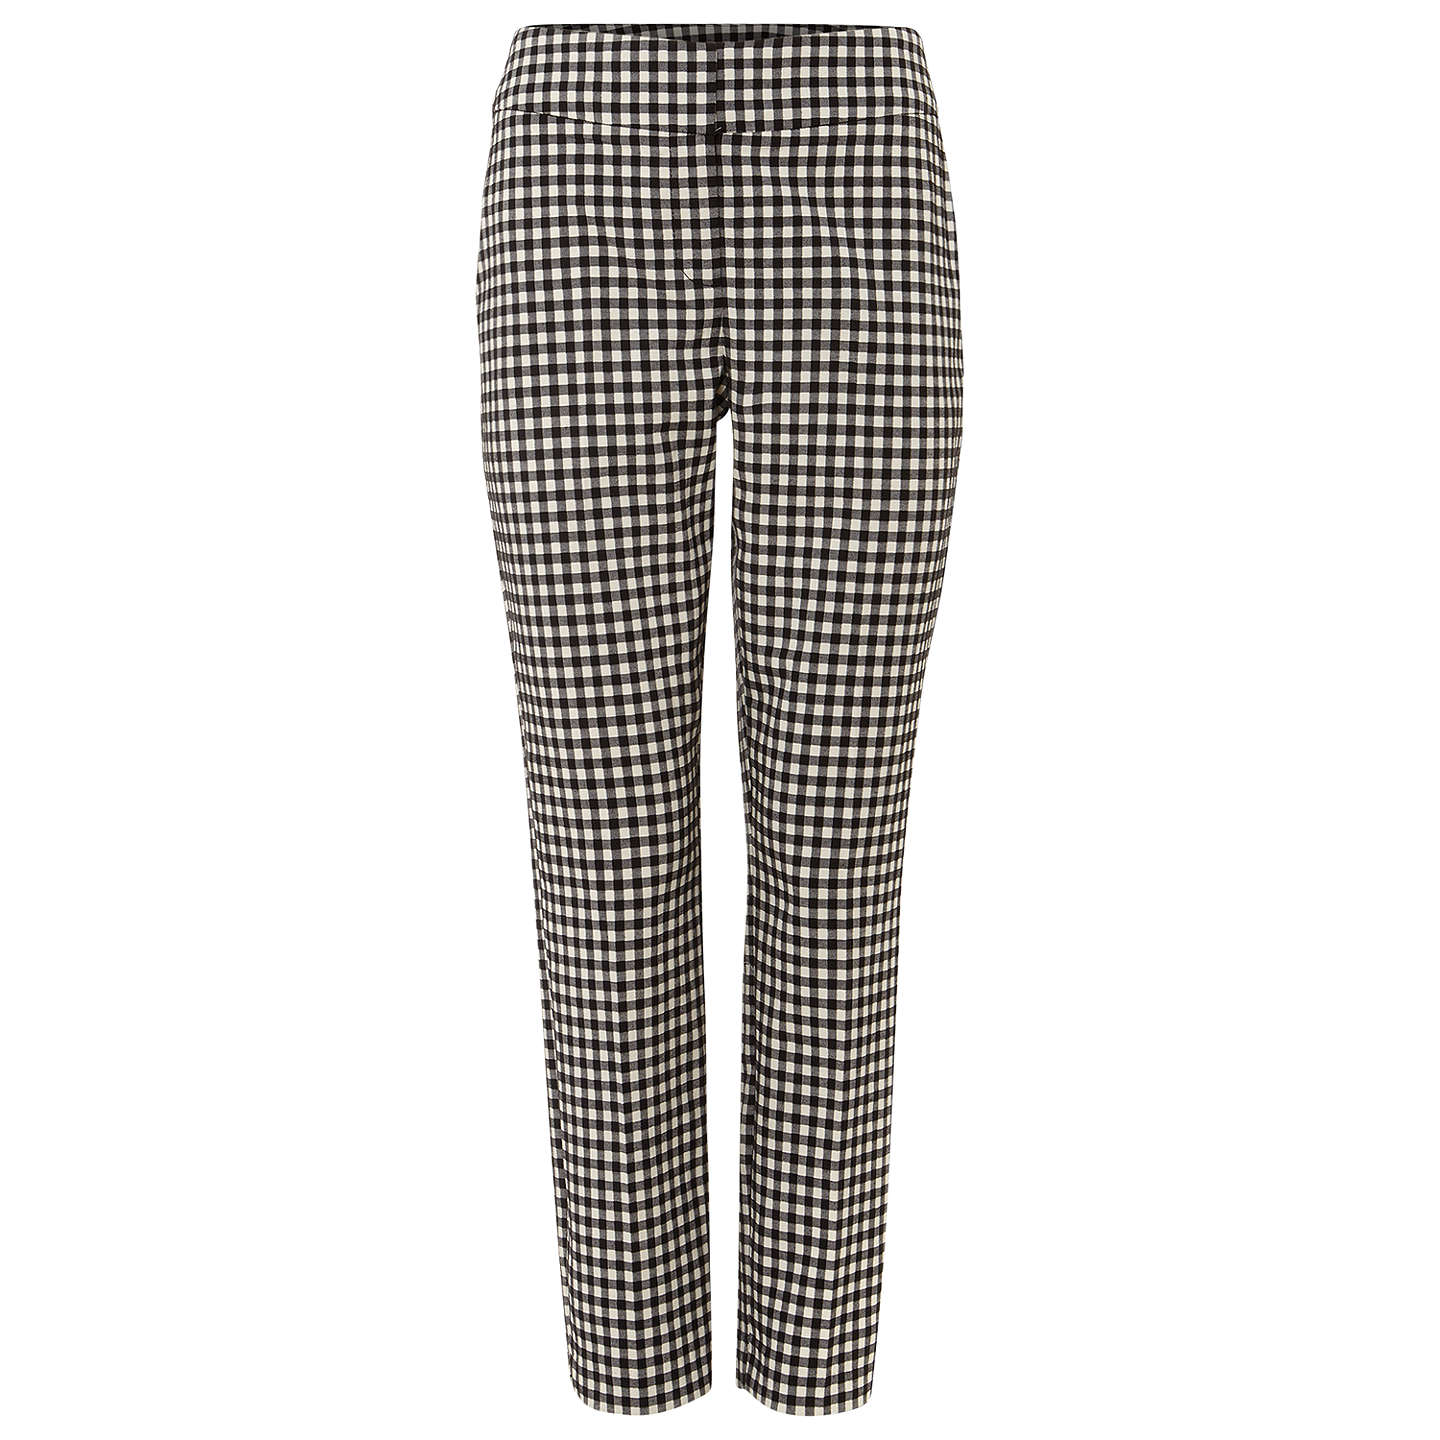 BuyPhase Eight Tyna Gingham Trousers, Black/Ivory, 8 Online at johnlewis.com